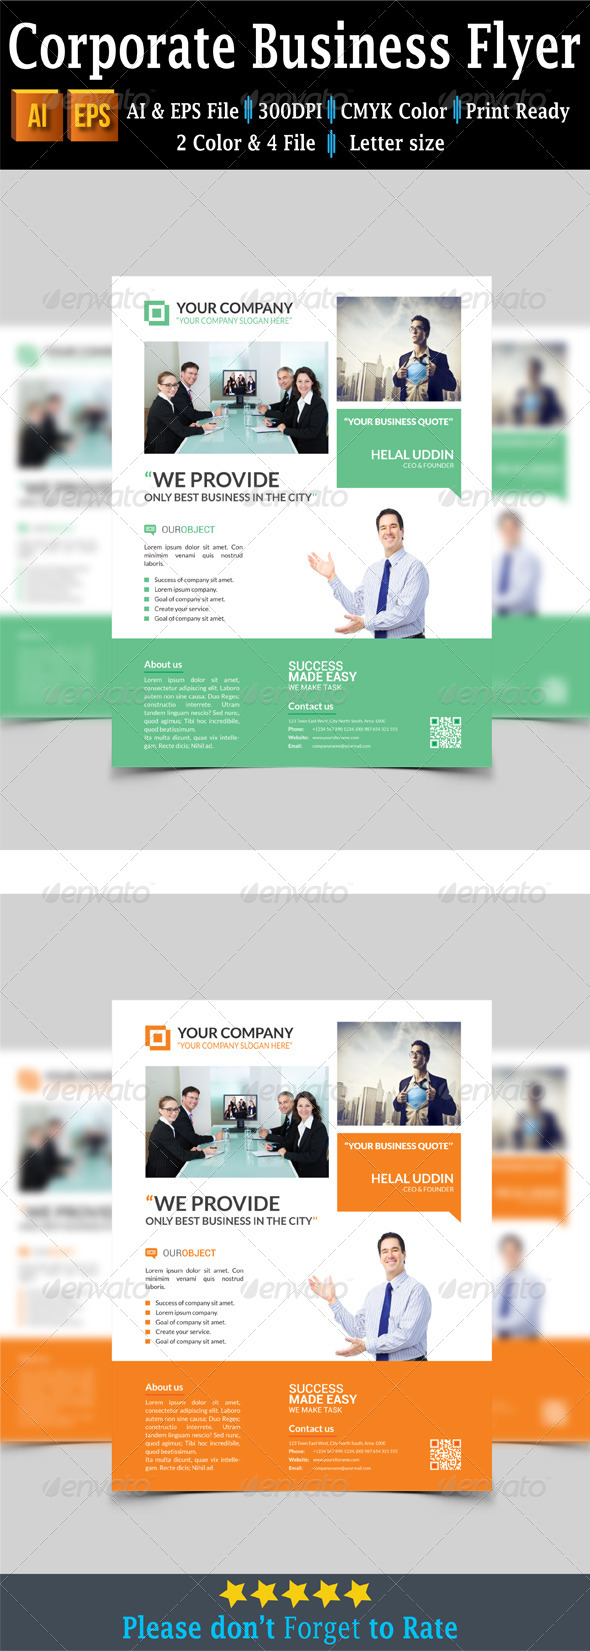 GraphicRiver Corporate Business Flyer 7649808